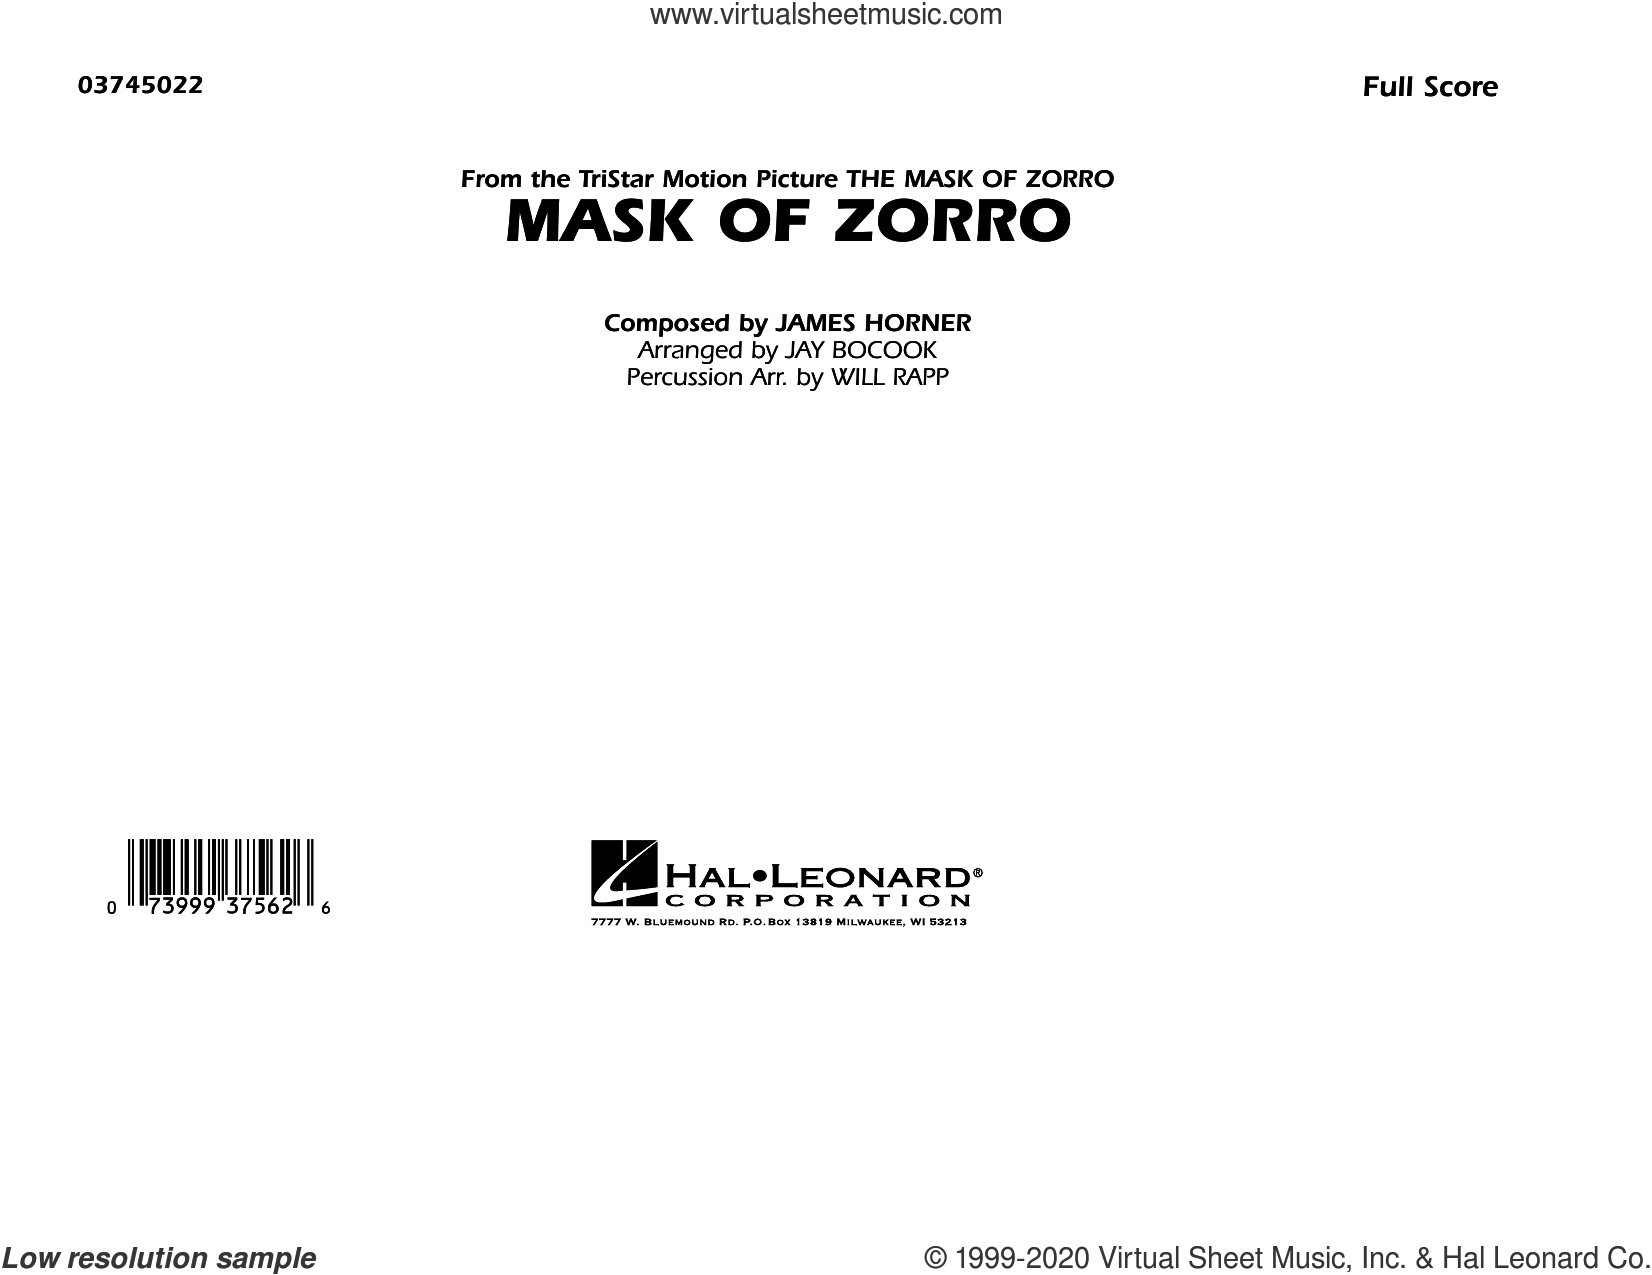 Mask of Zorro (arr. Jay Bocook) (COMPLETE) sheet music for marching band by James Horner, Jay Bocook and Will Rapp, intermediate skill level